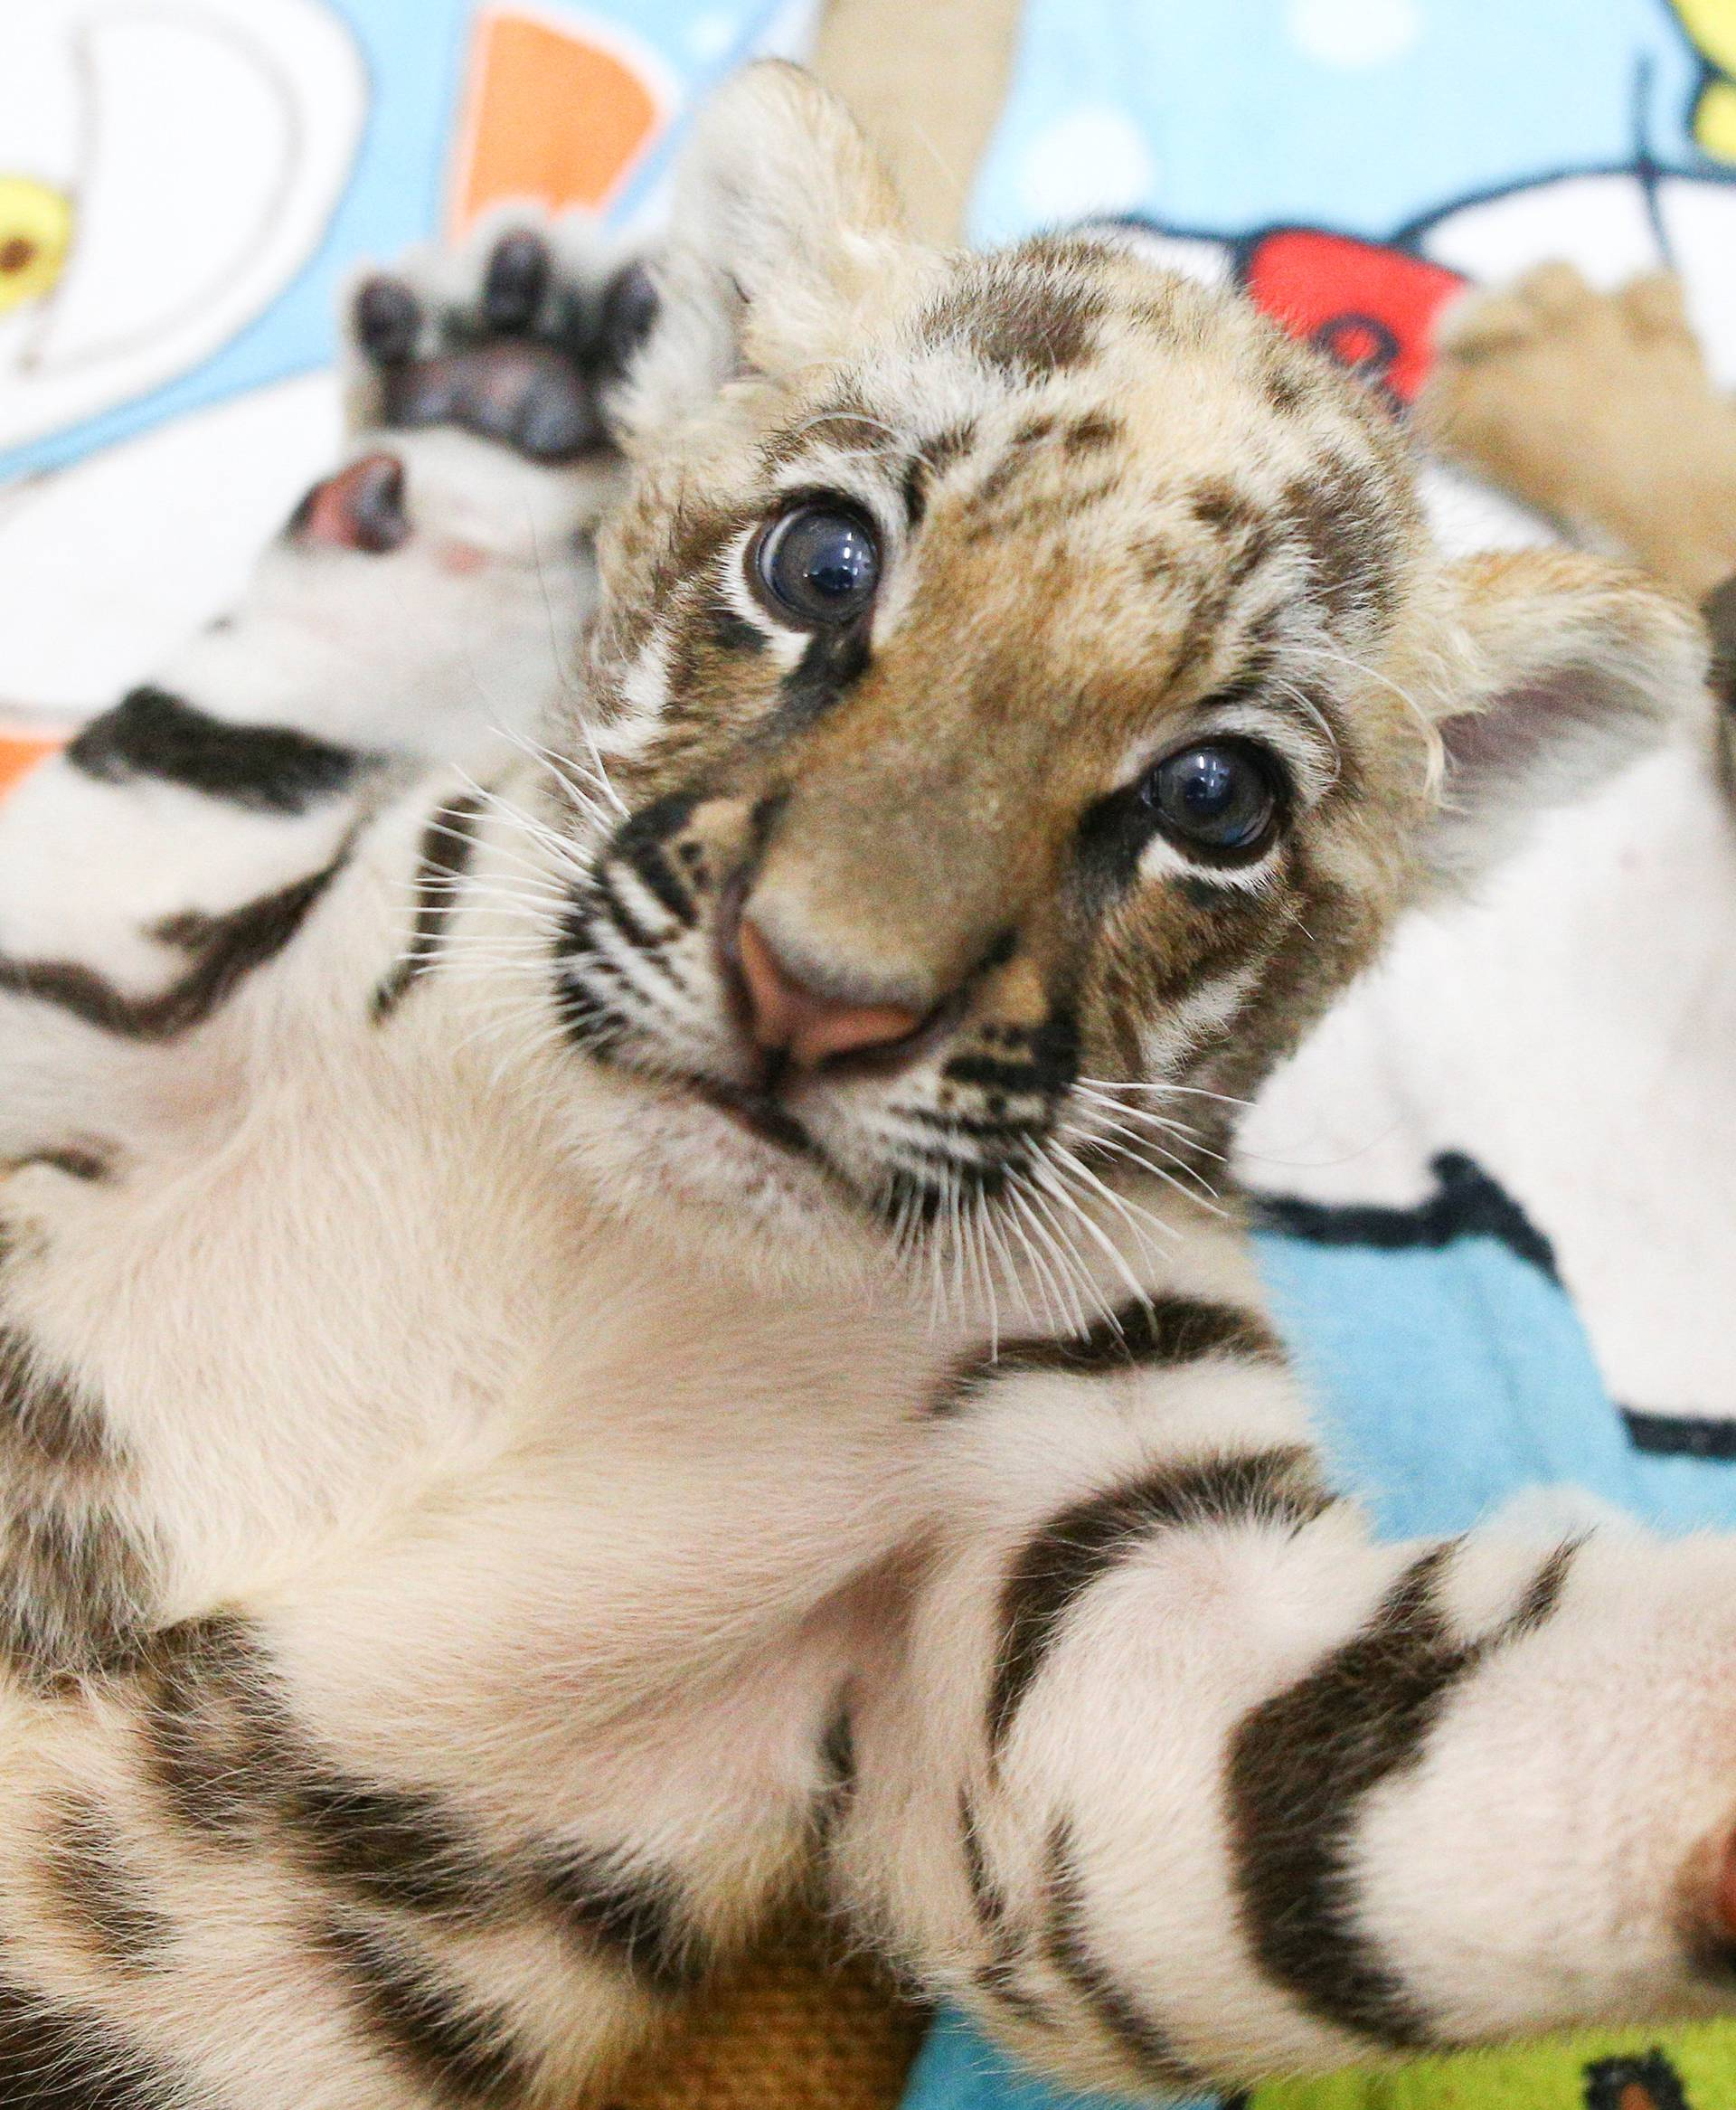 Tiger cubs are pictured at Sriracha Tiger Zoo in Chonburi province